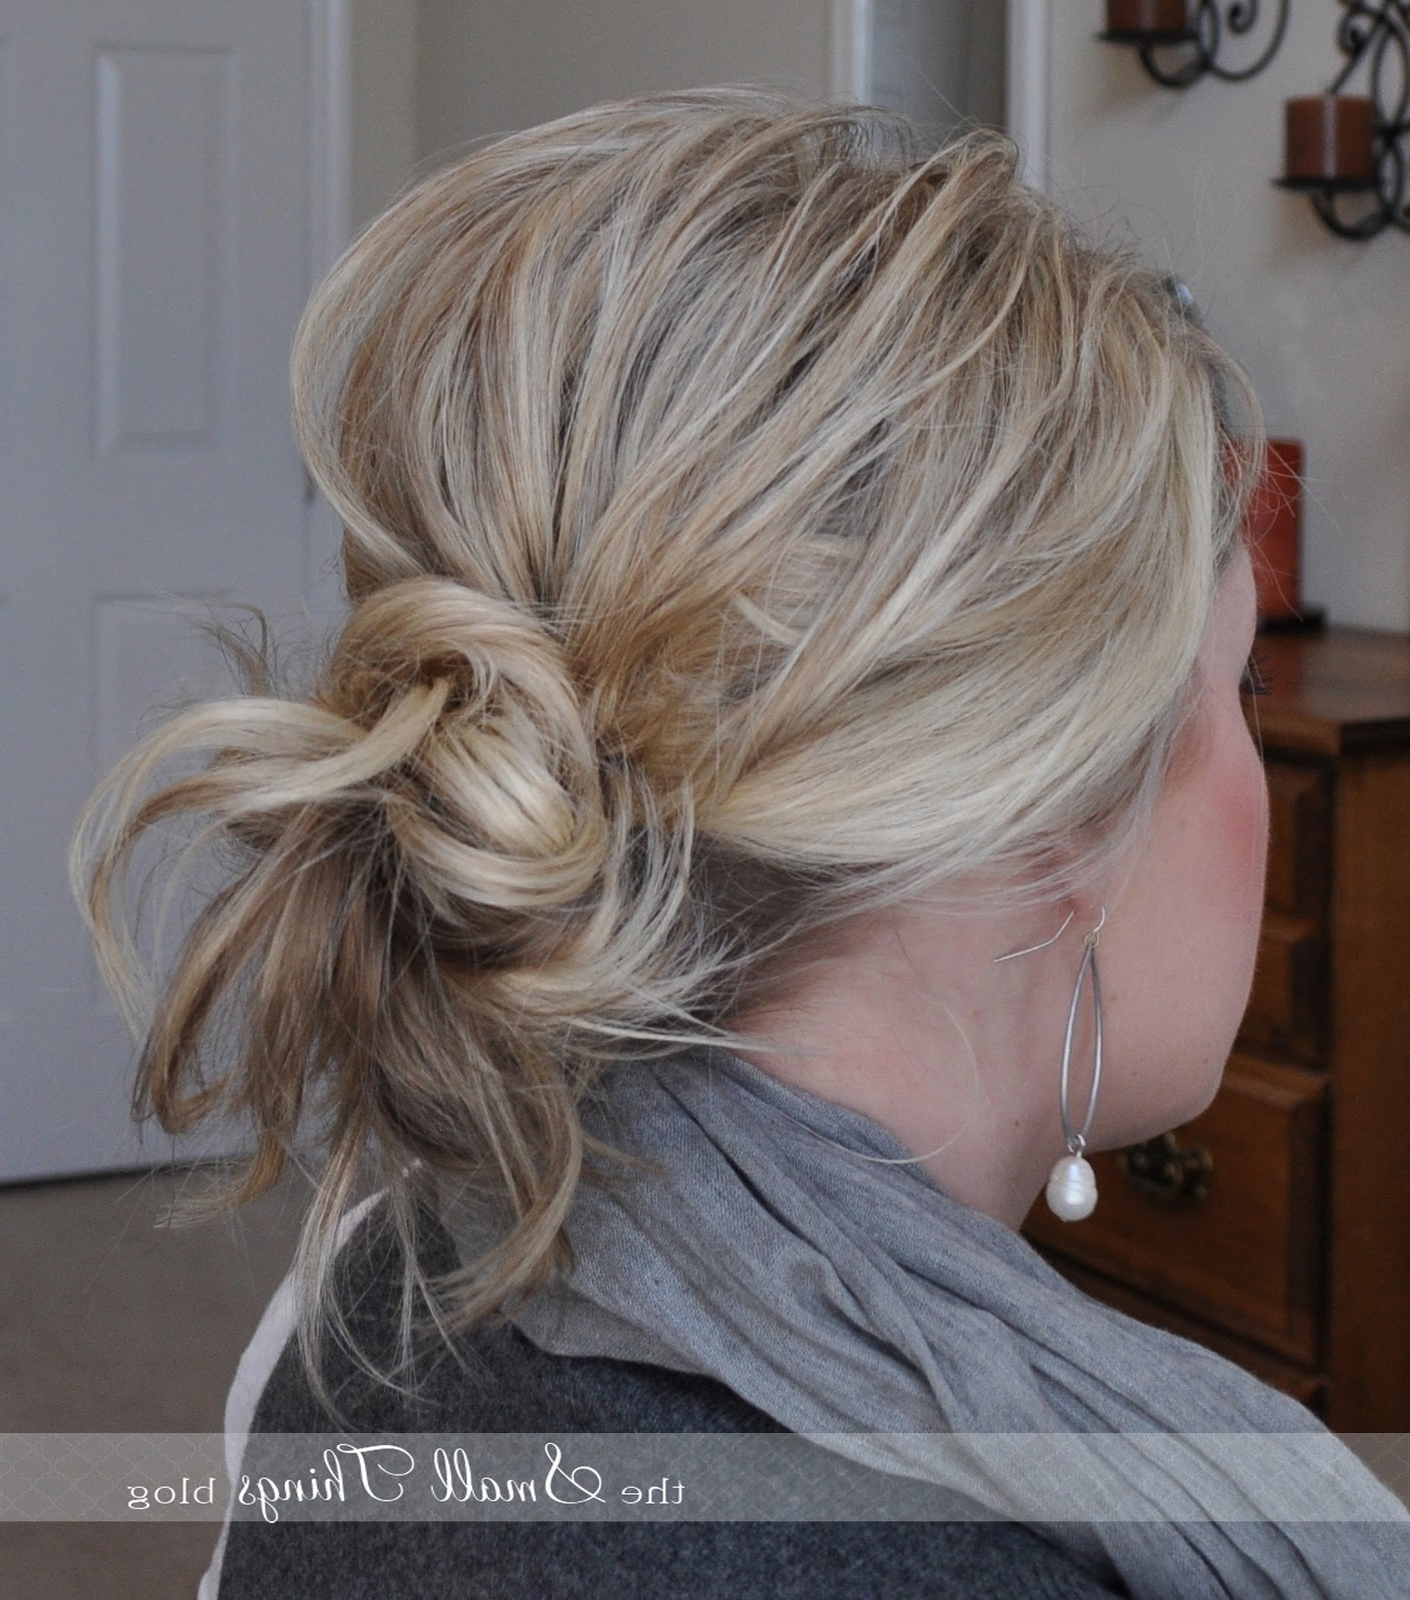 Trendy Low Messy Ponytail Hairstyles Inside Messy Ponytail/bun – The Small Things Blog (View 17 of 20)